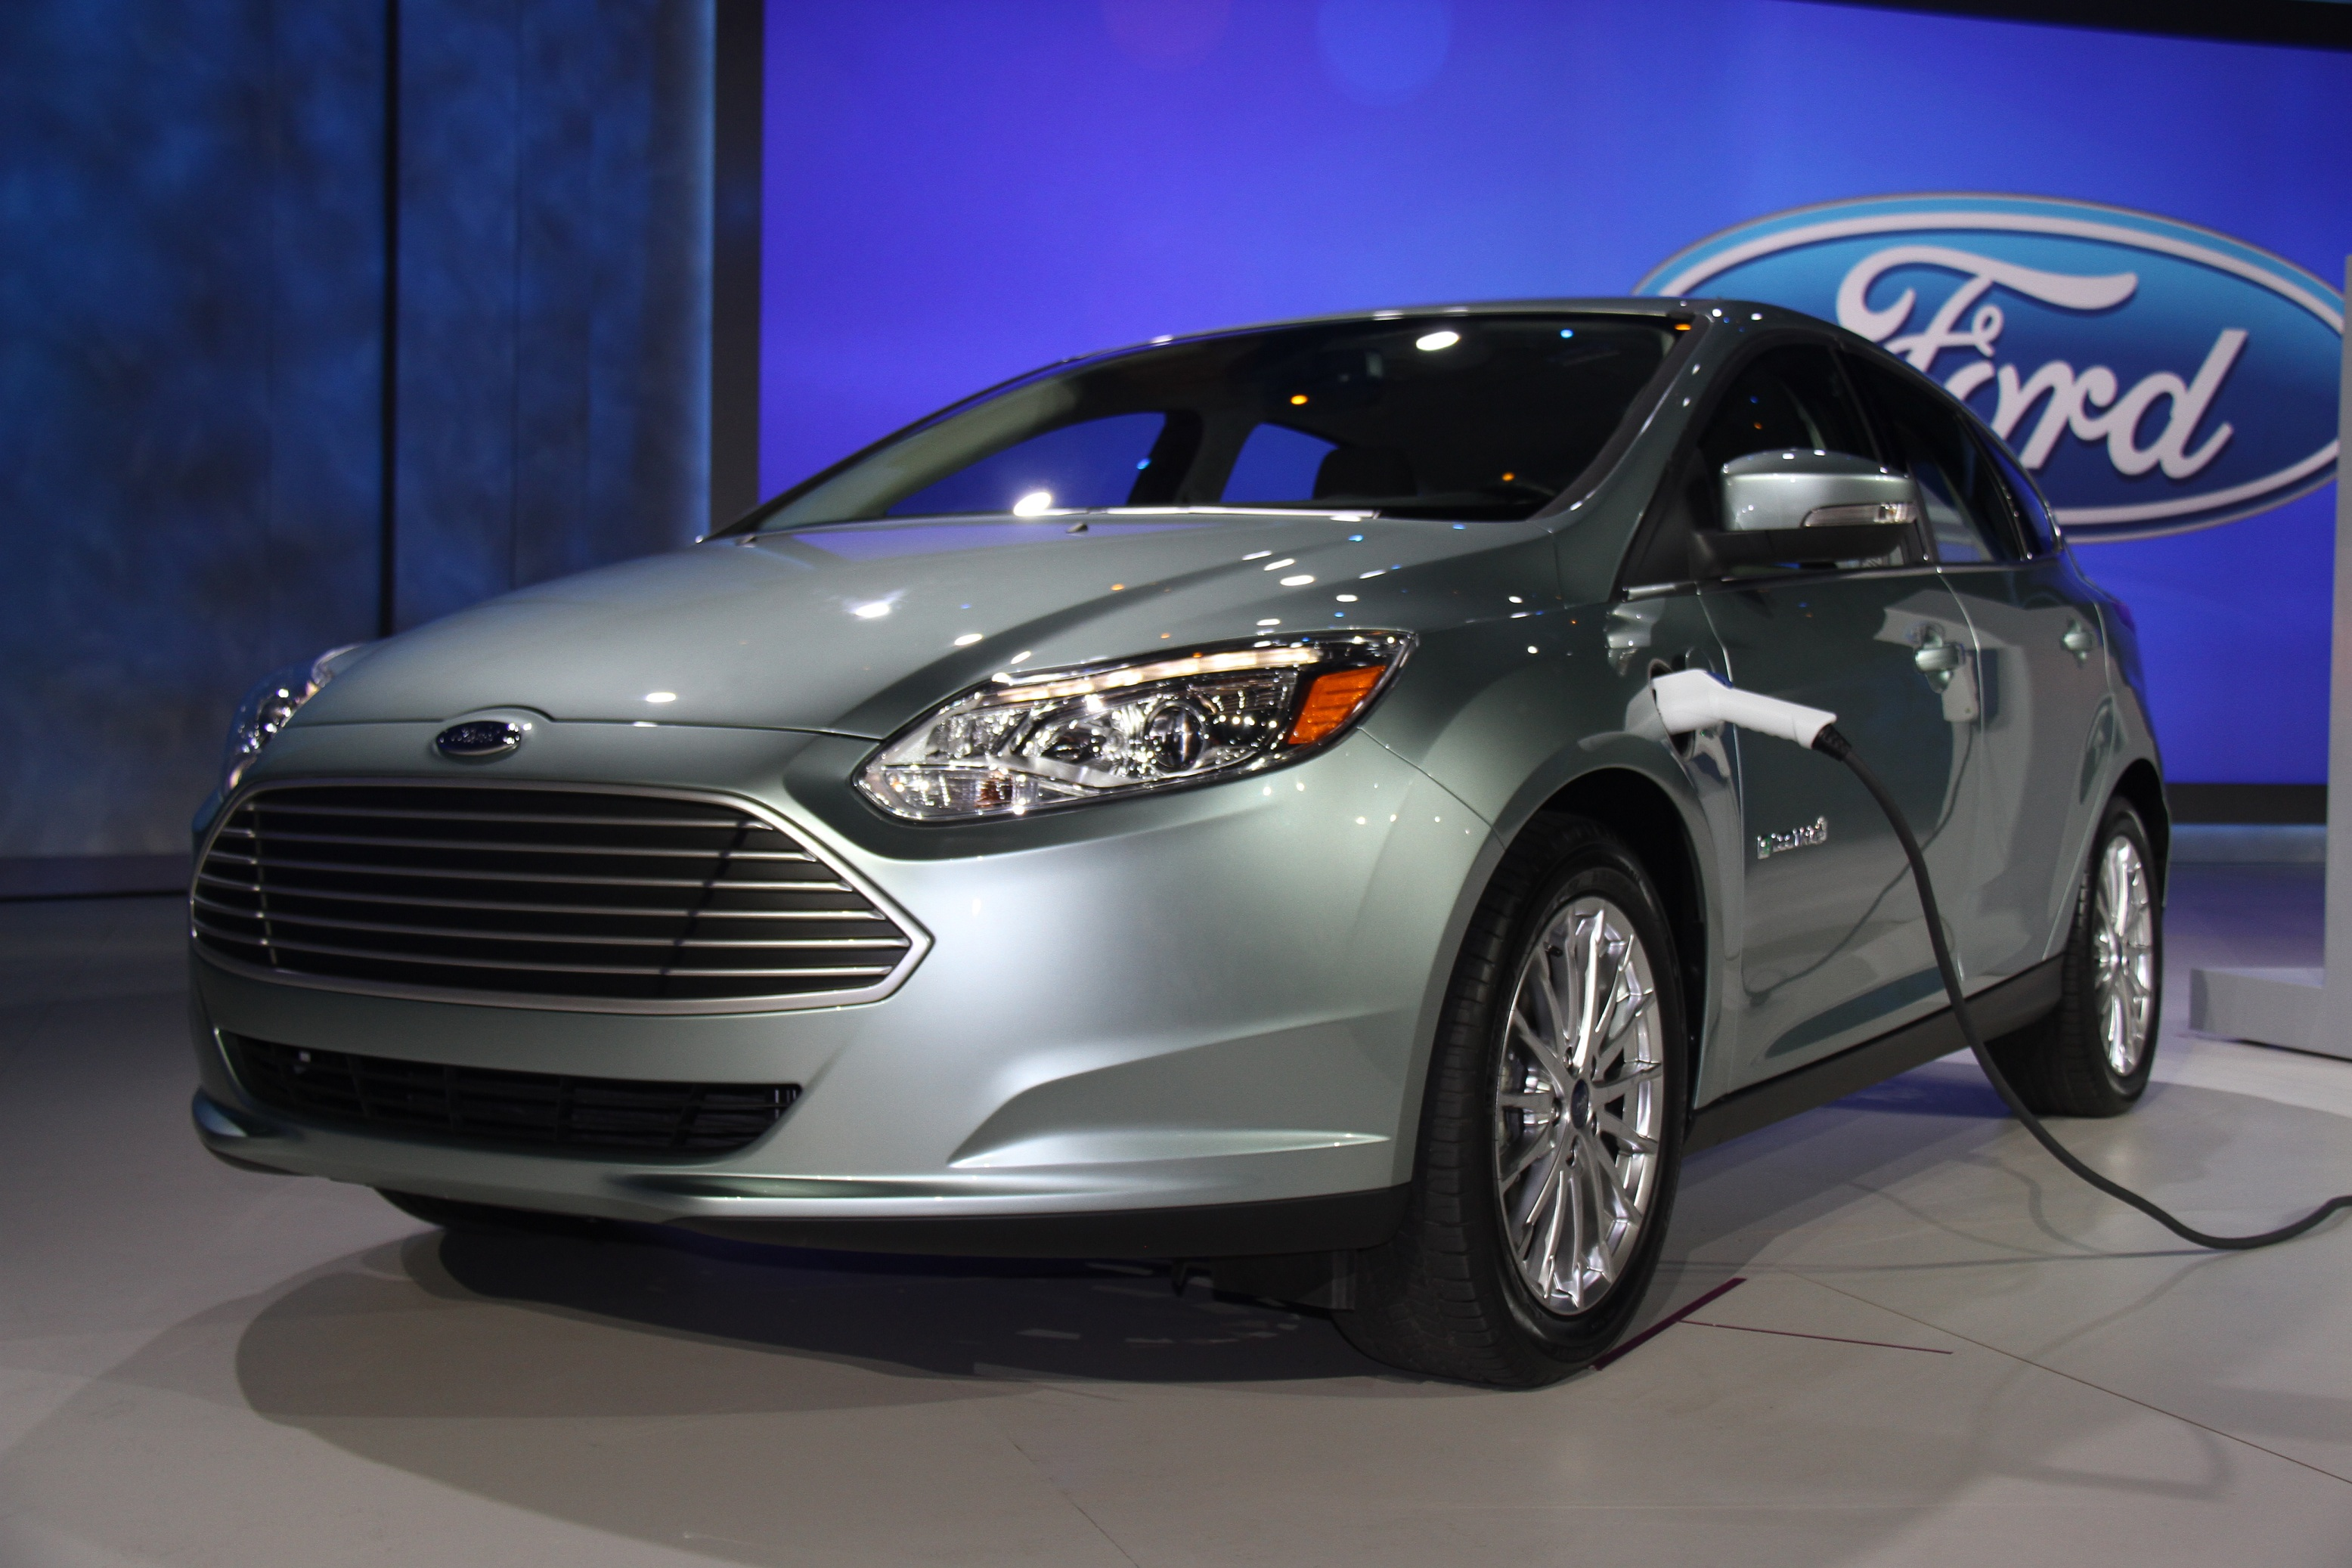 all 2017 ford motor company models will get android auto